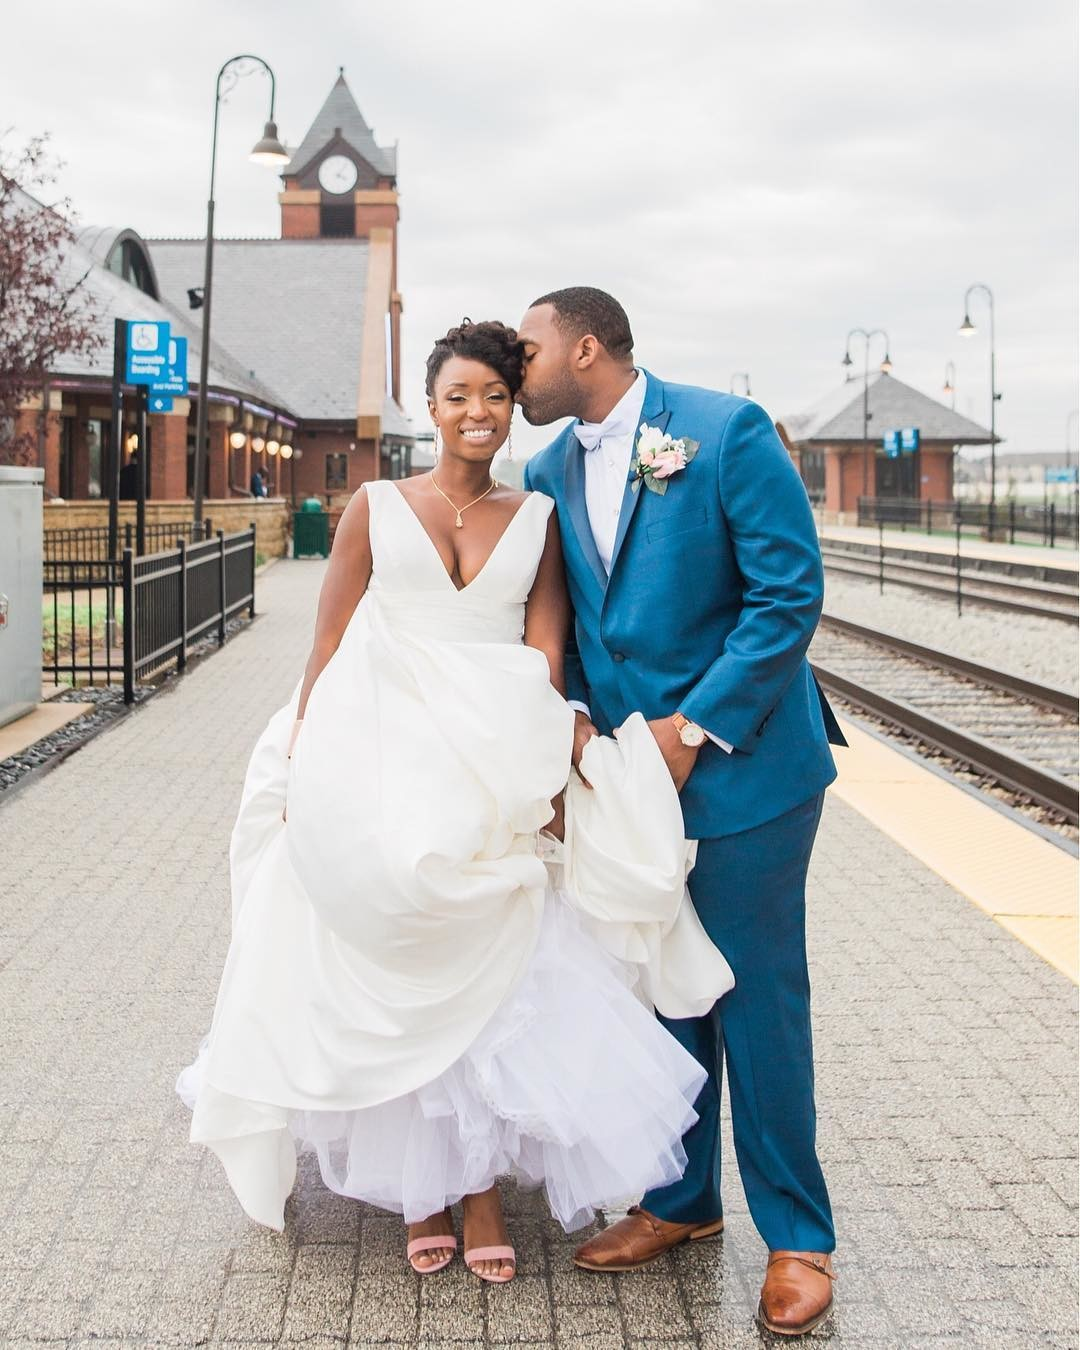 Chicago Train Station wedding